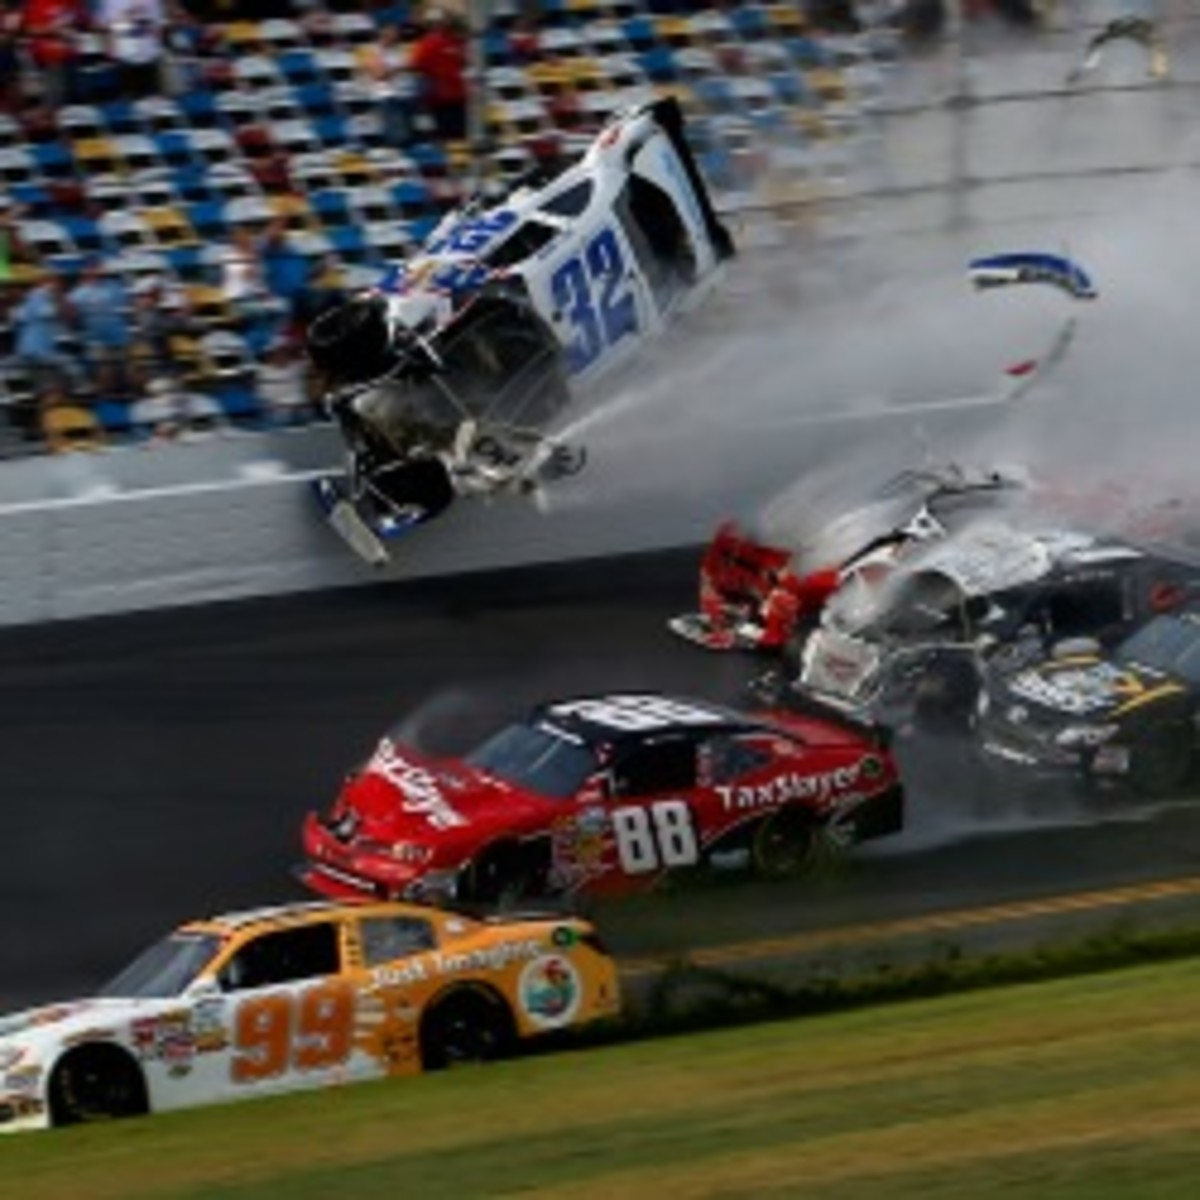 28 people in the stands were injured during a last-lap crash at Daytona. (Chris Graythen/Getty Images)